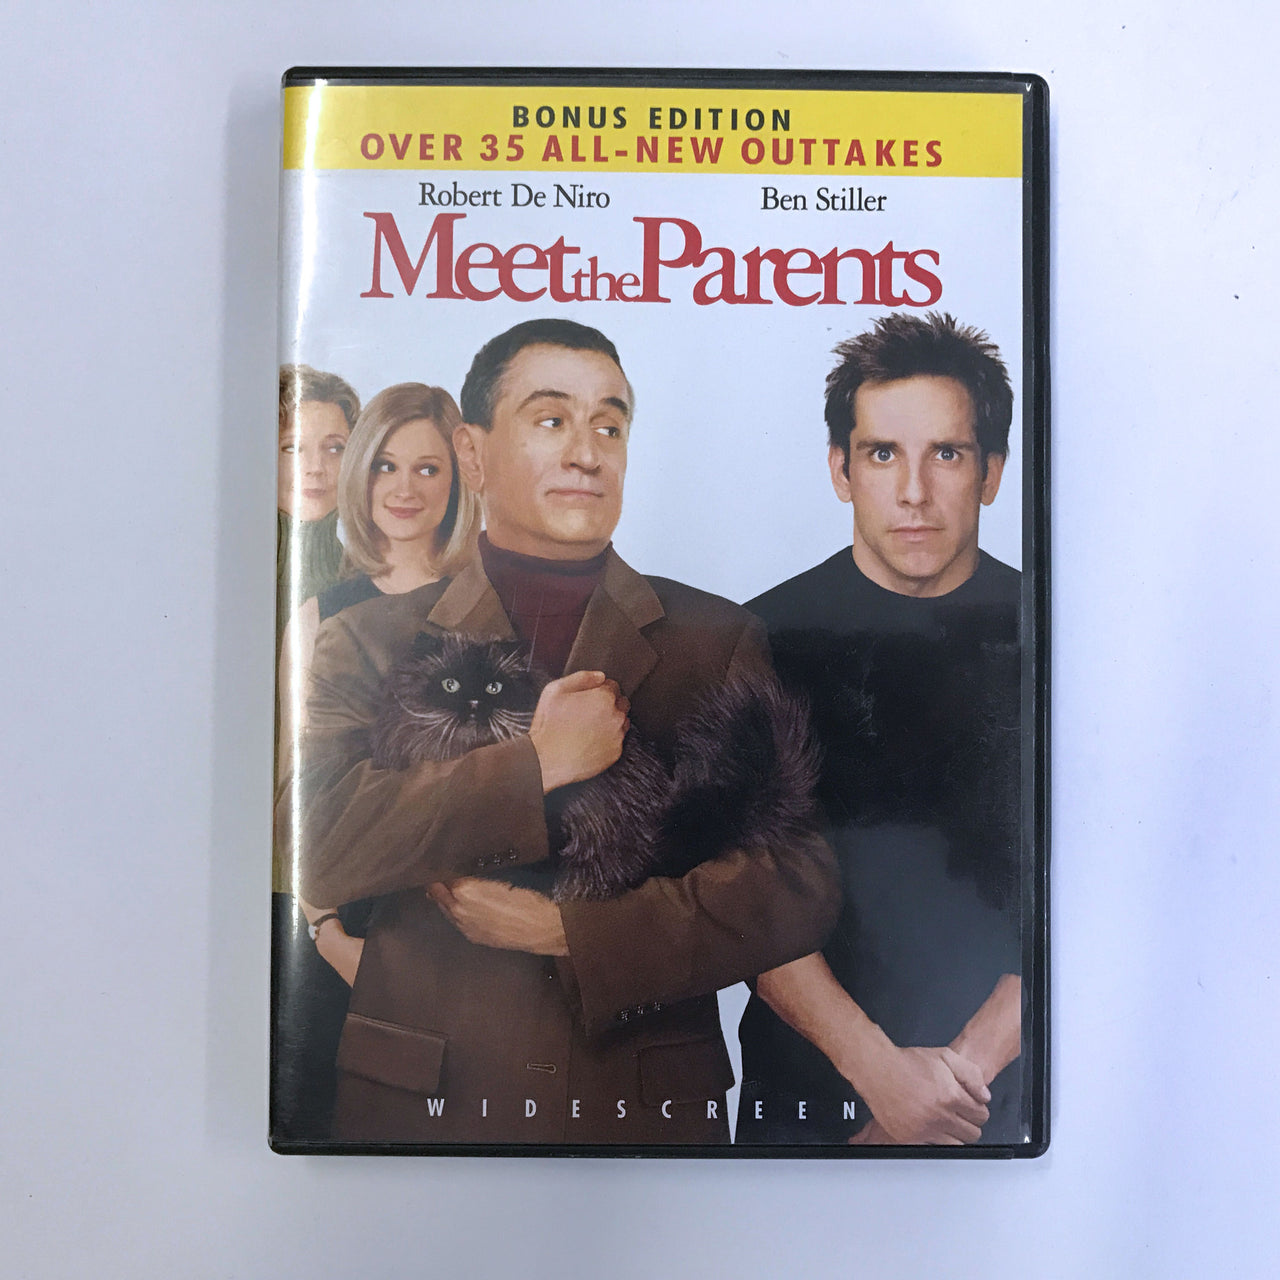 Meet the Parents (DVD) In Clamshell Case, Pre-owned DVD Disc